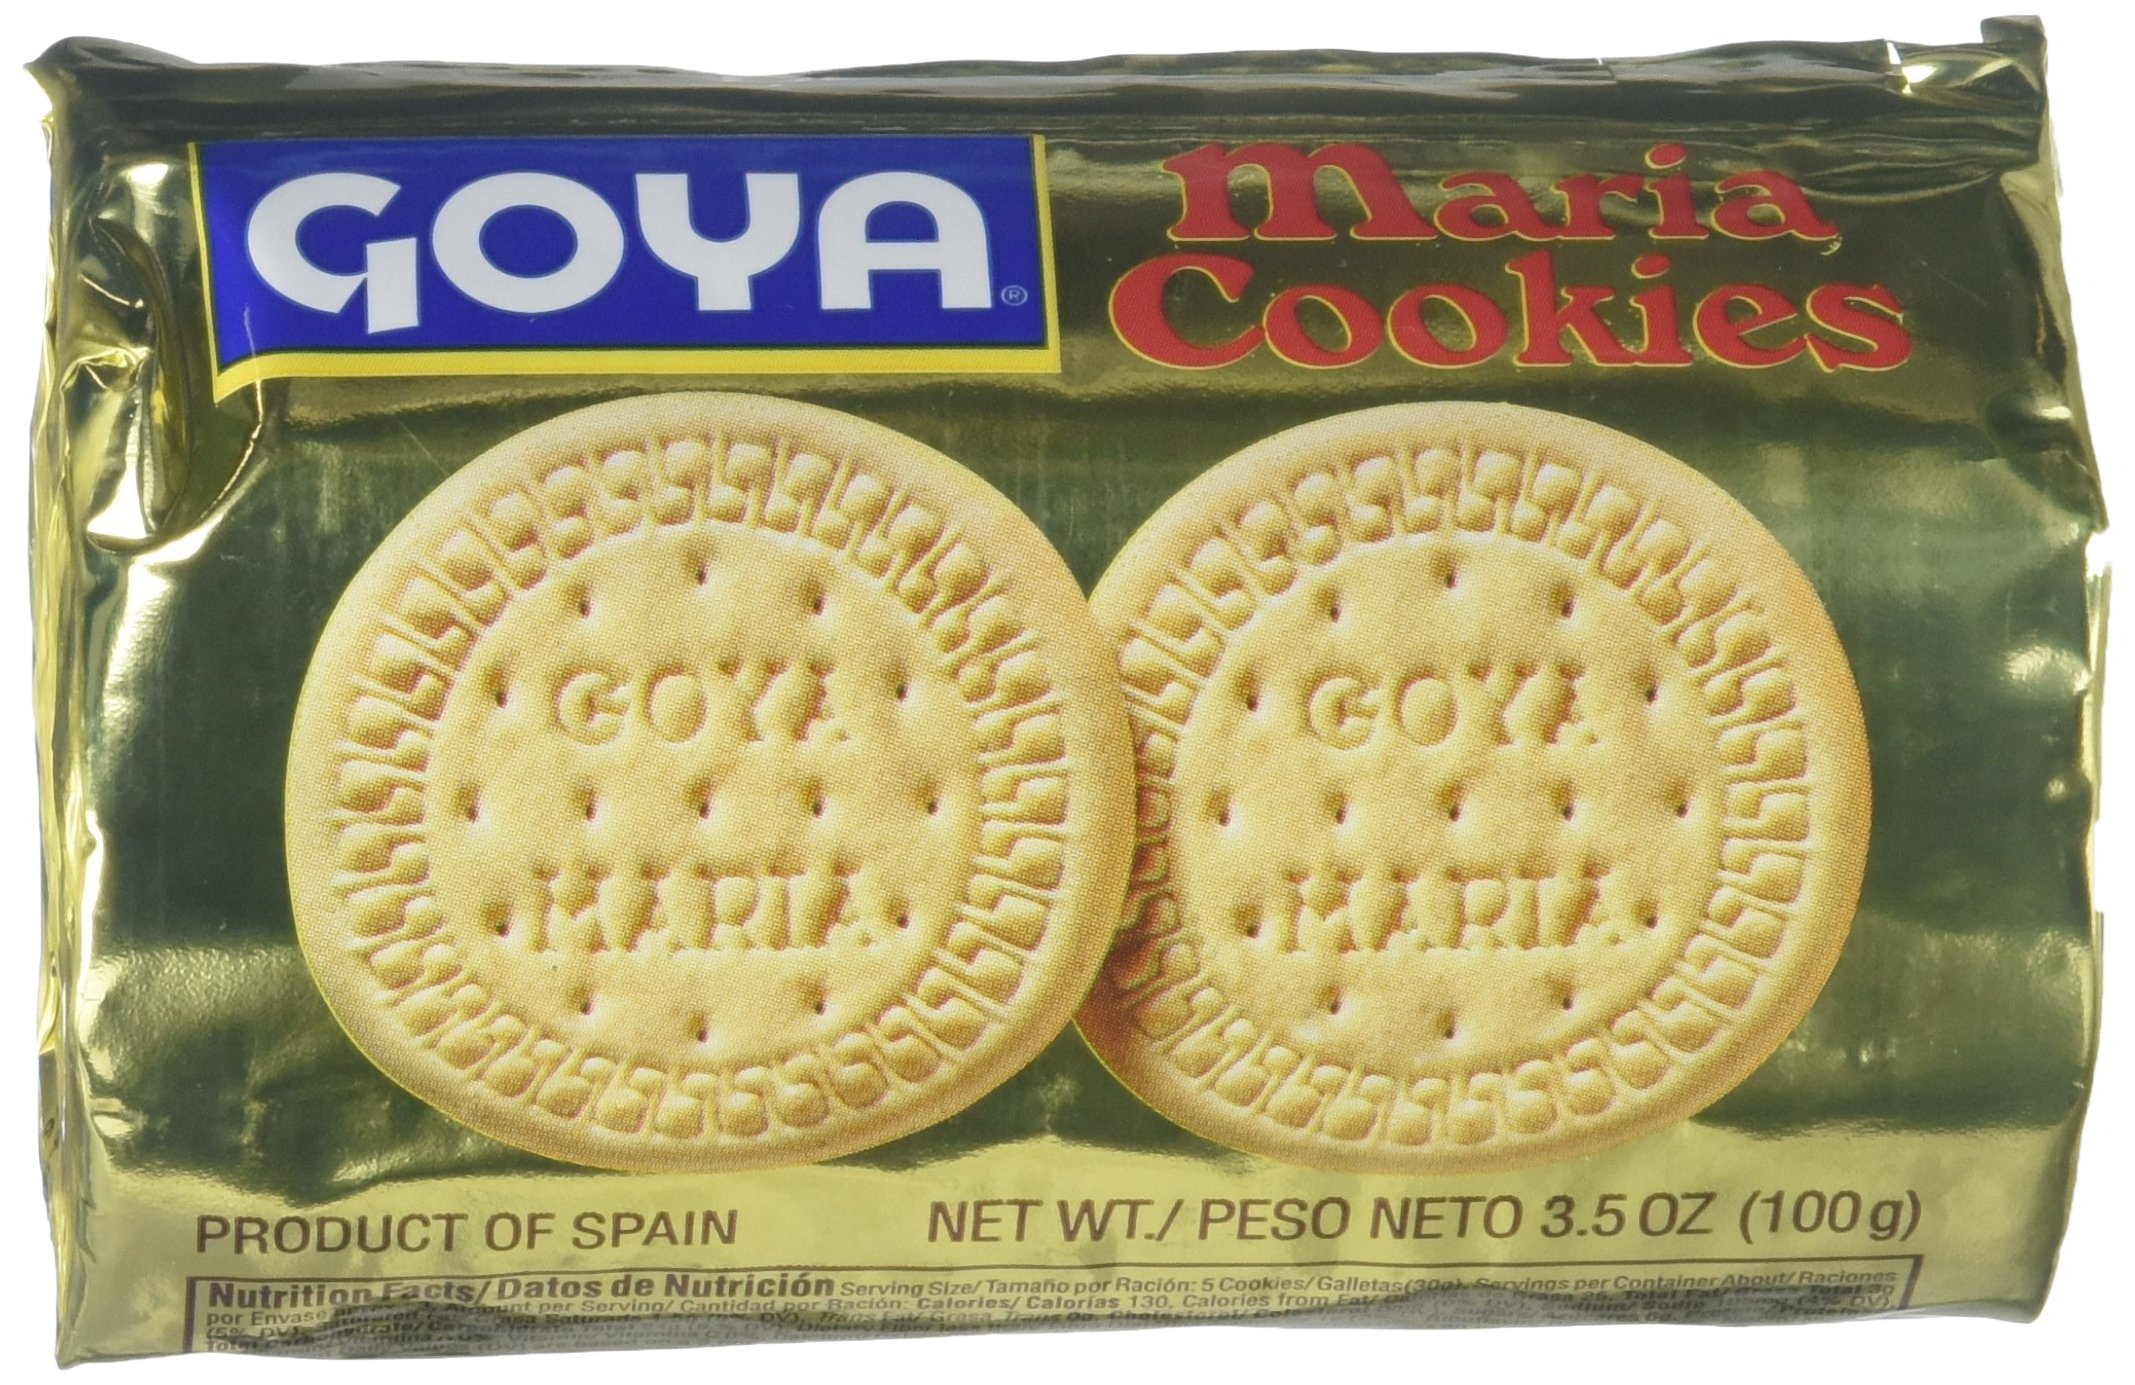 Goya Foods Maria Cookies, 3.5 oz by Goya (Image #1)